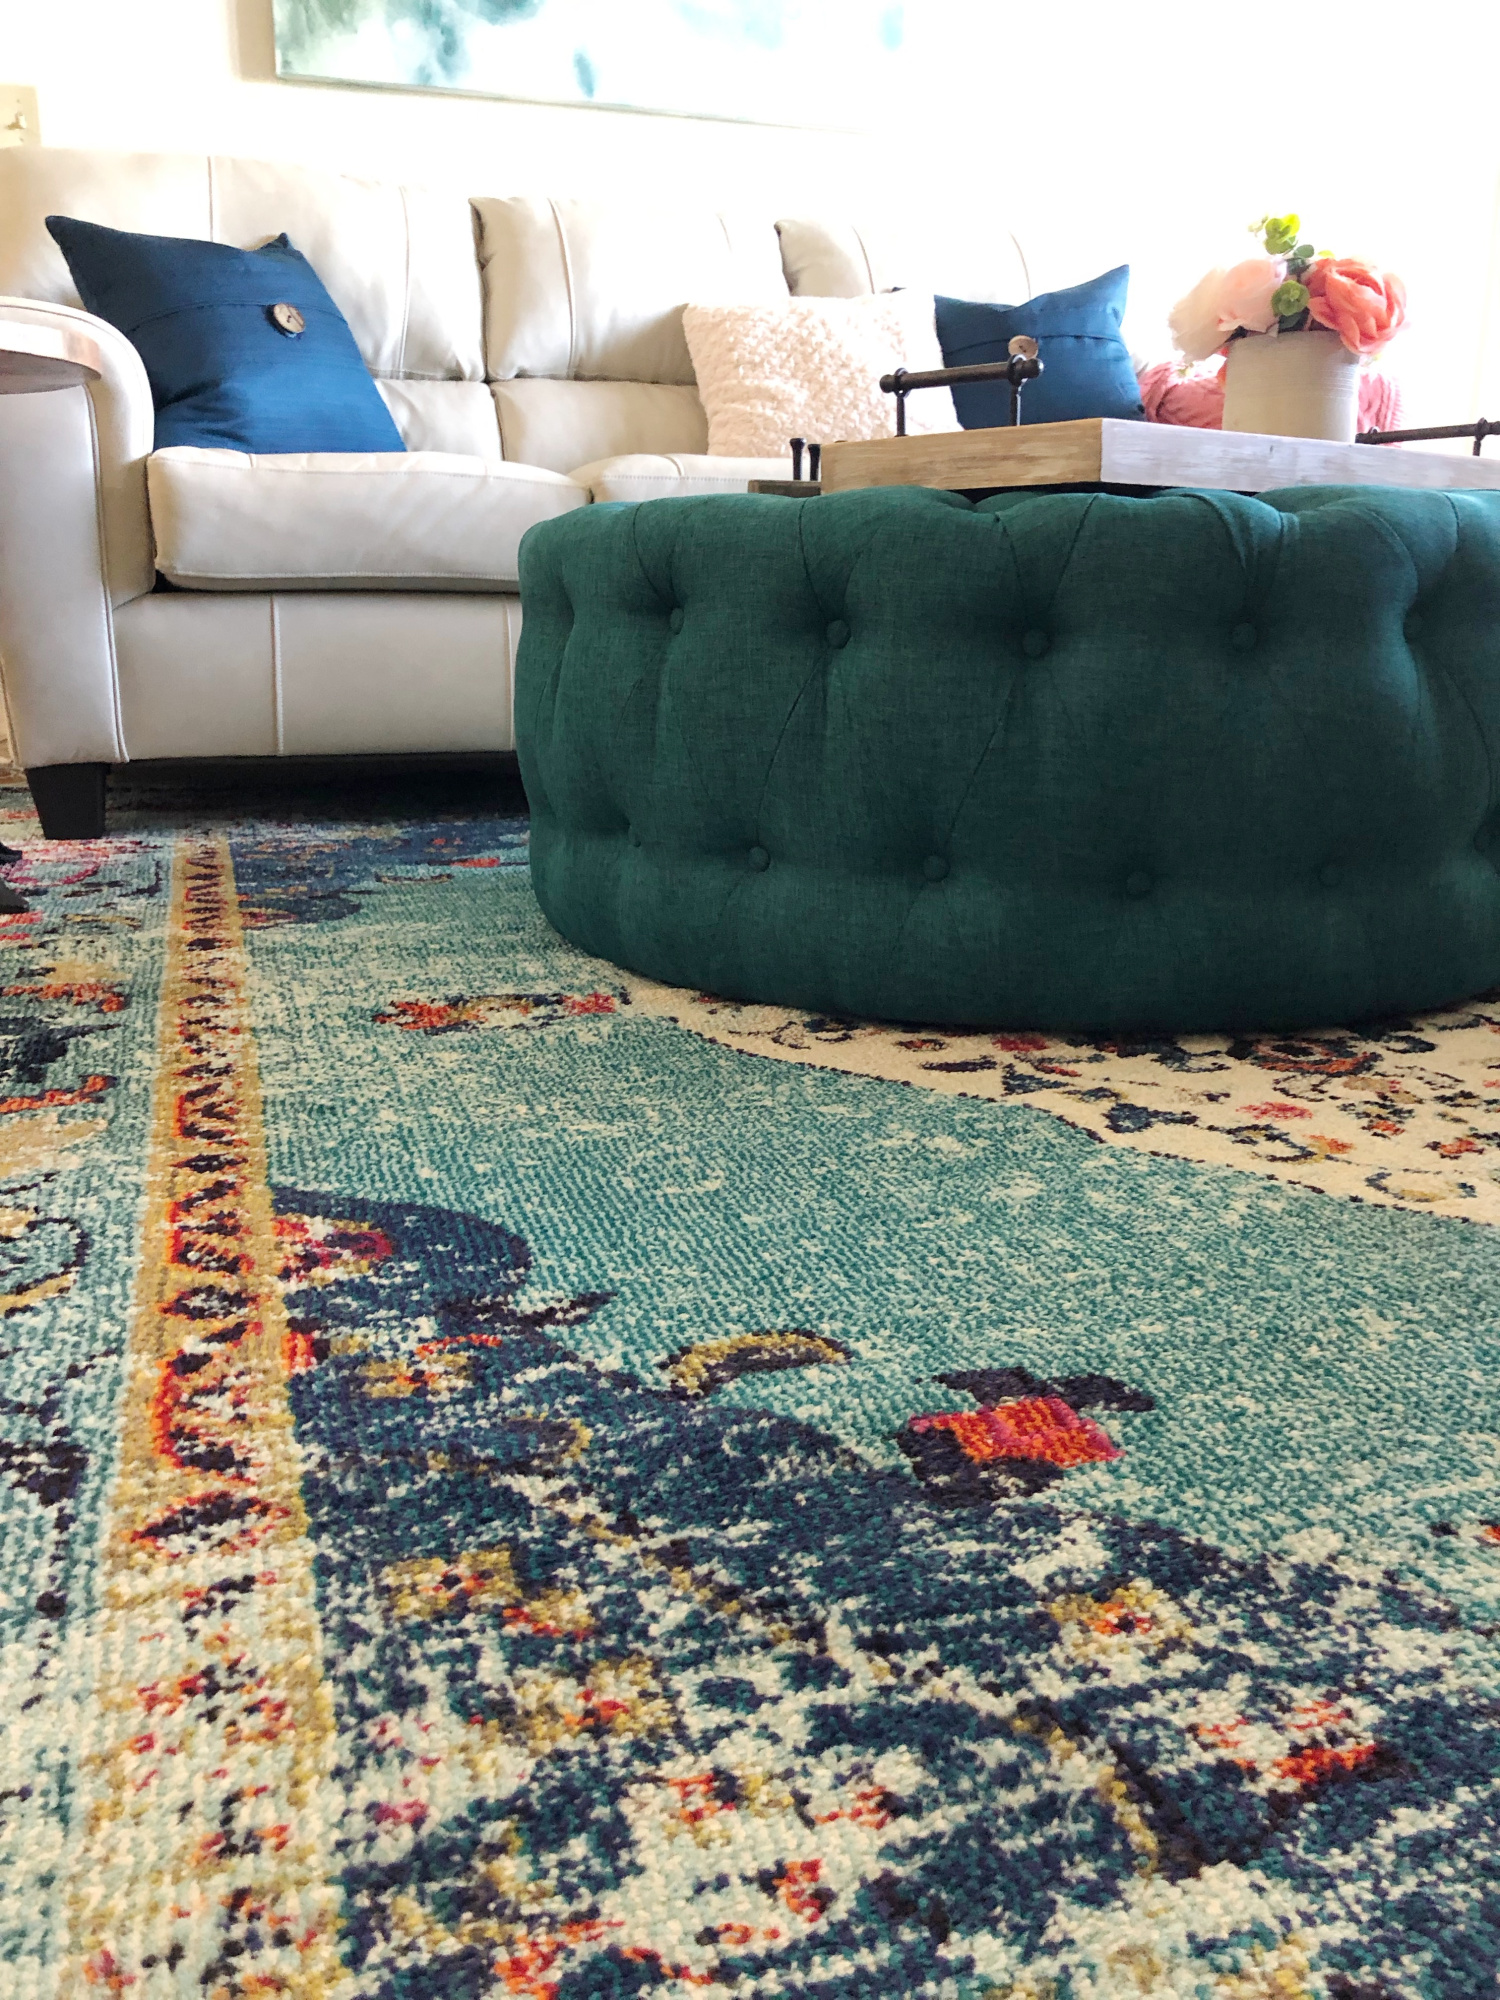 Rug and ottoman teal accents - TEAL LIVING ROOM DECOR - LAKE CONDO or Beach